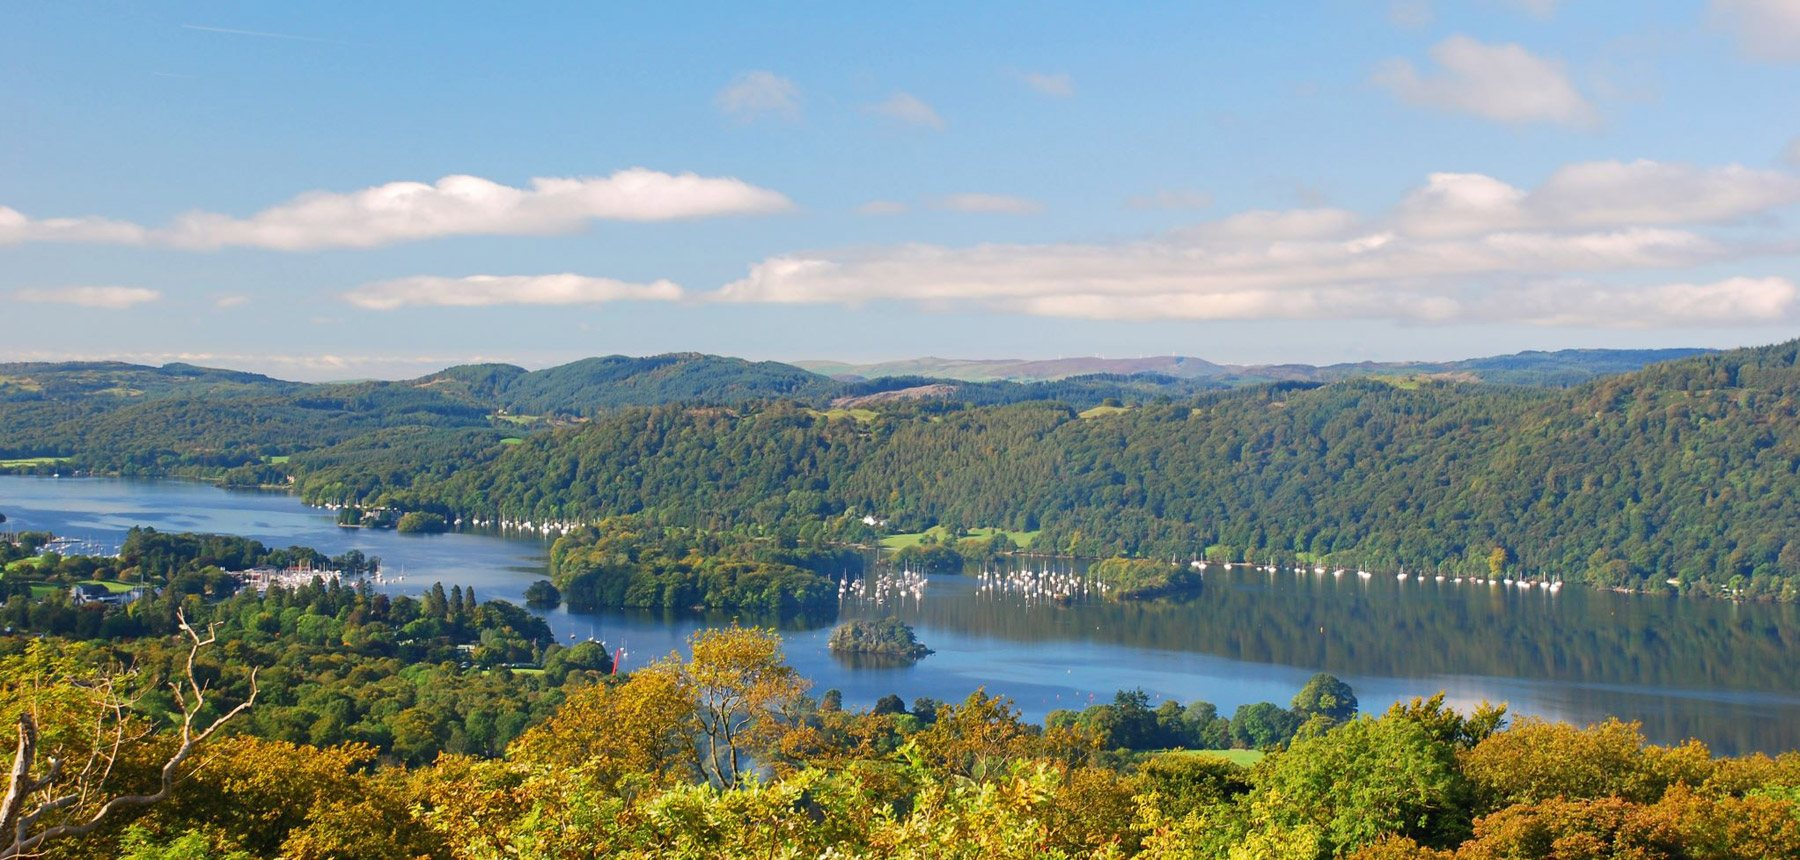 View of Windermere lake in the Lake District